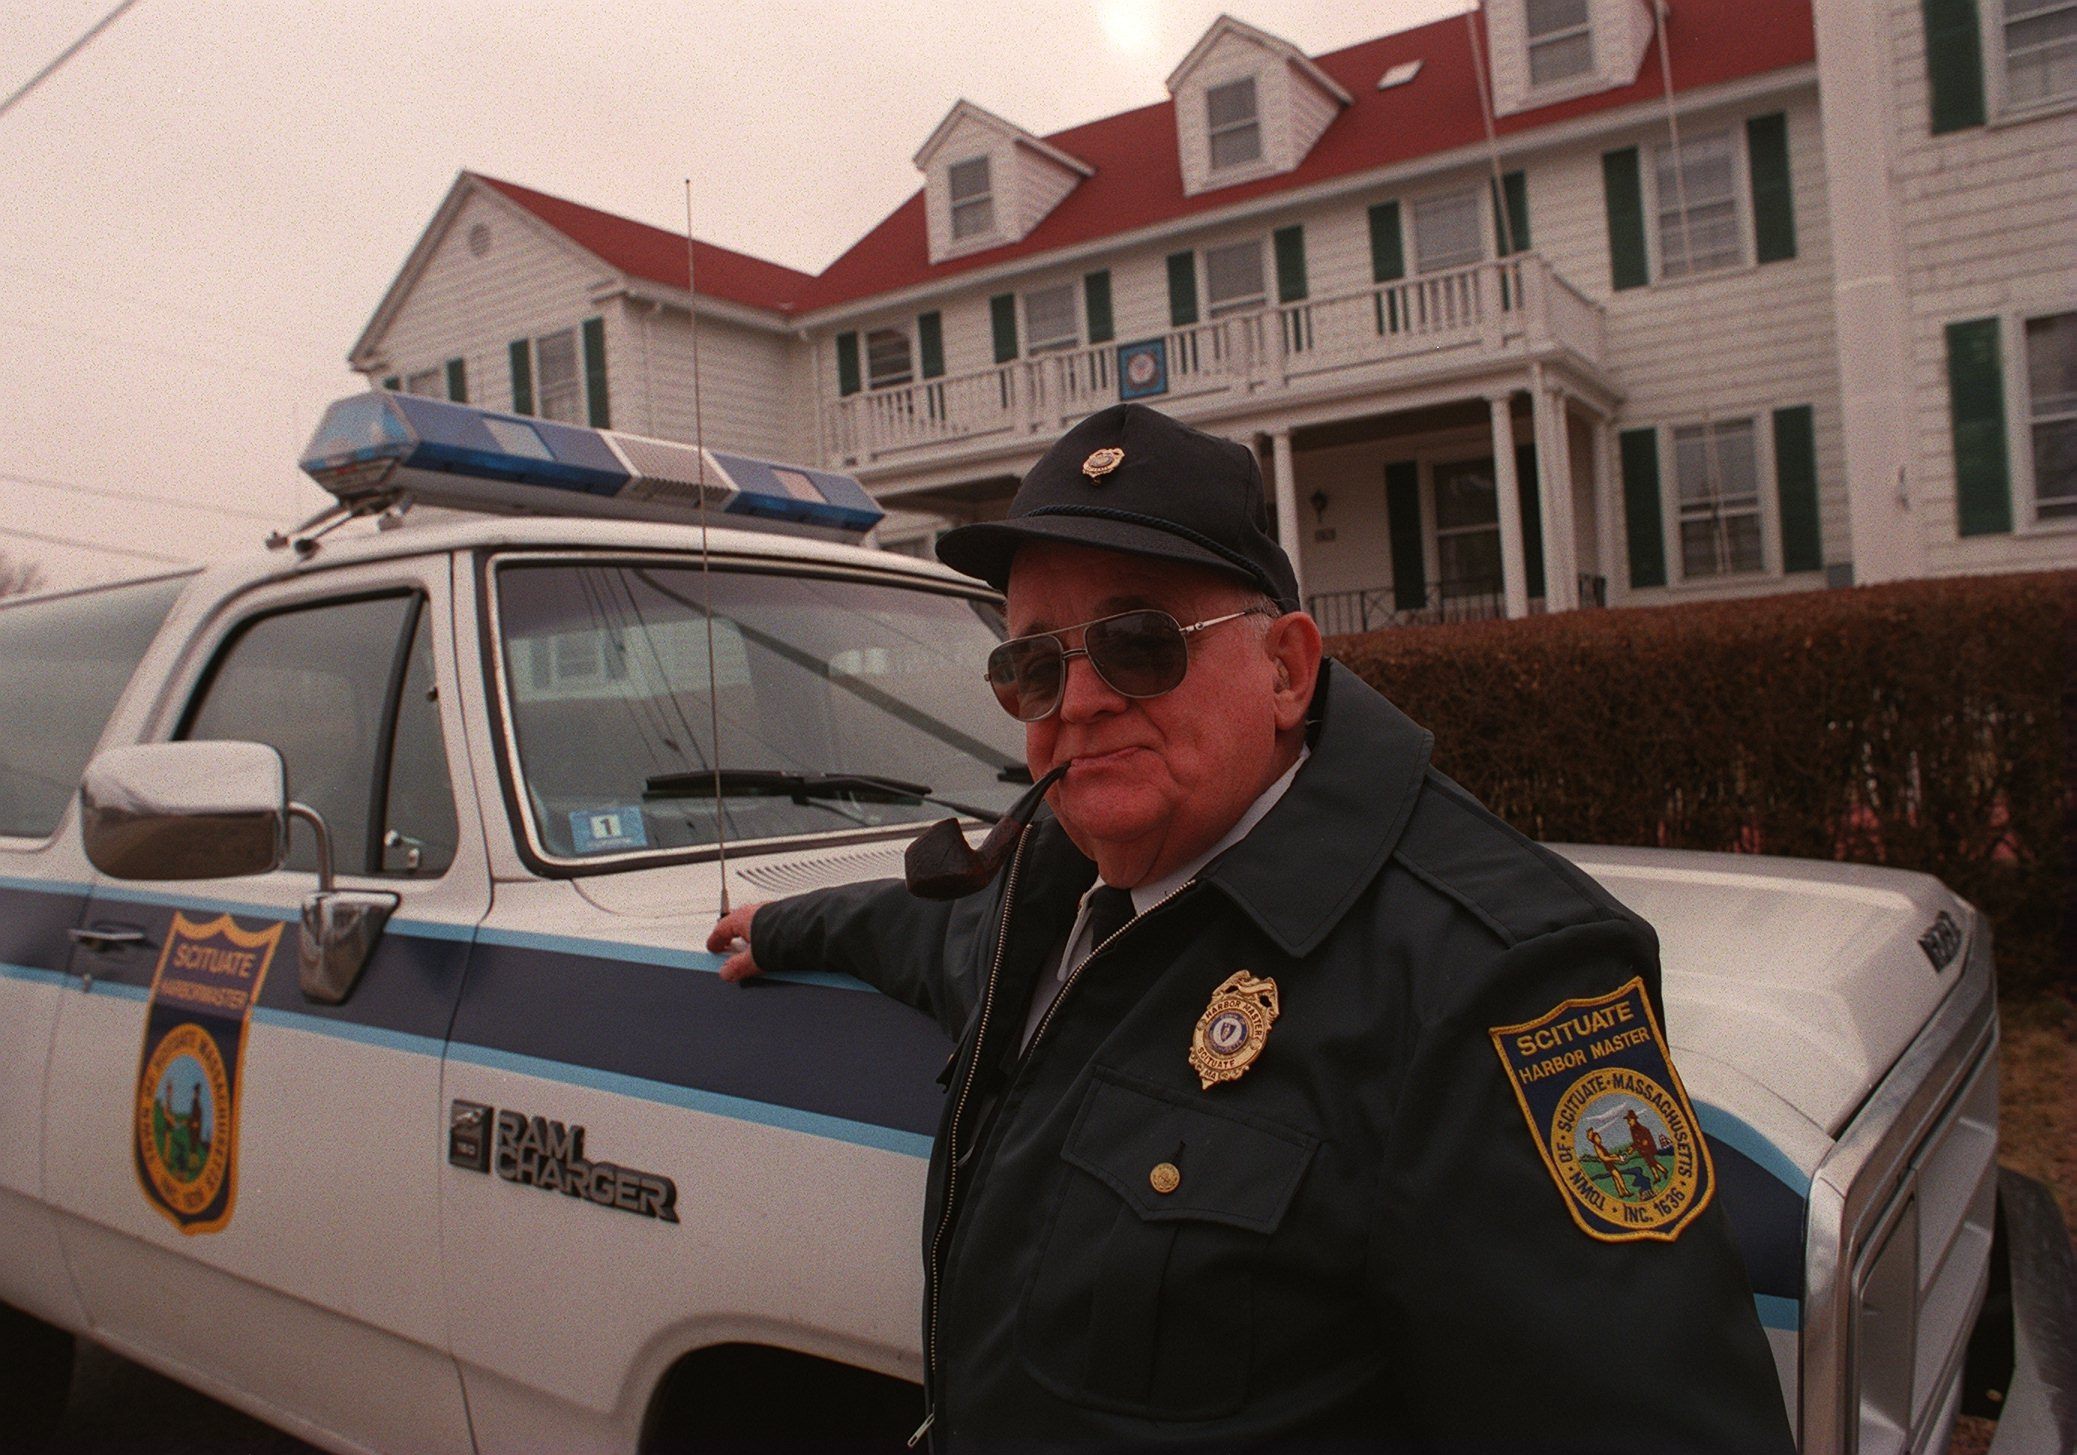 Watch is now over' for longtime Scituate harbormaster - The Boston Globe